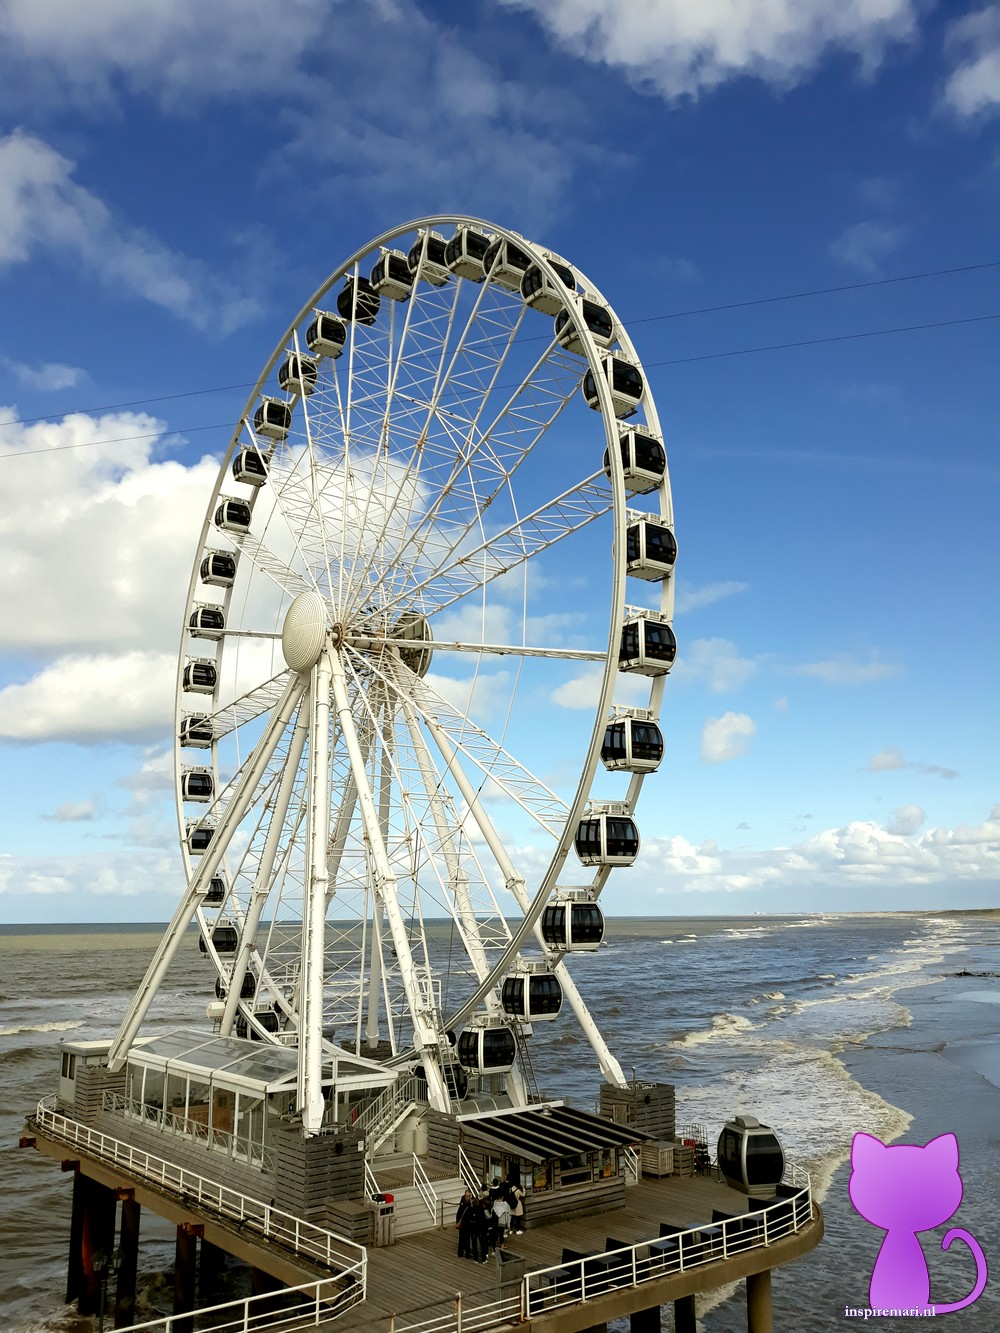 Ferris wheel of Scheveningen near The Hague, the Netherlands